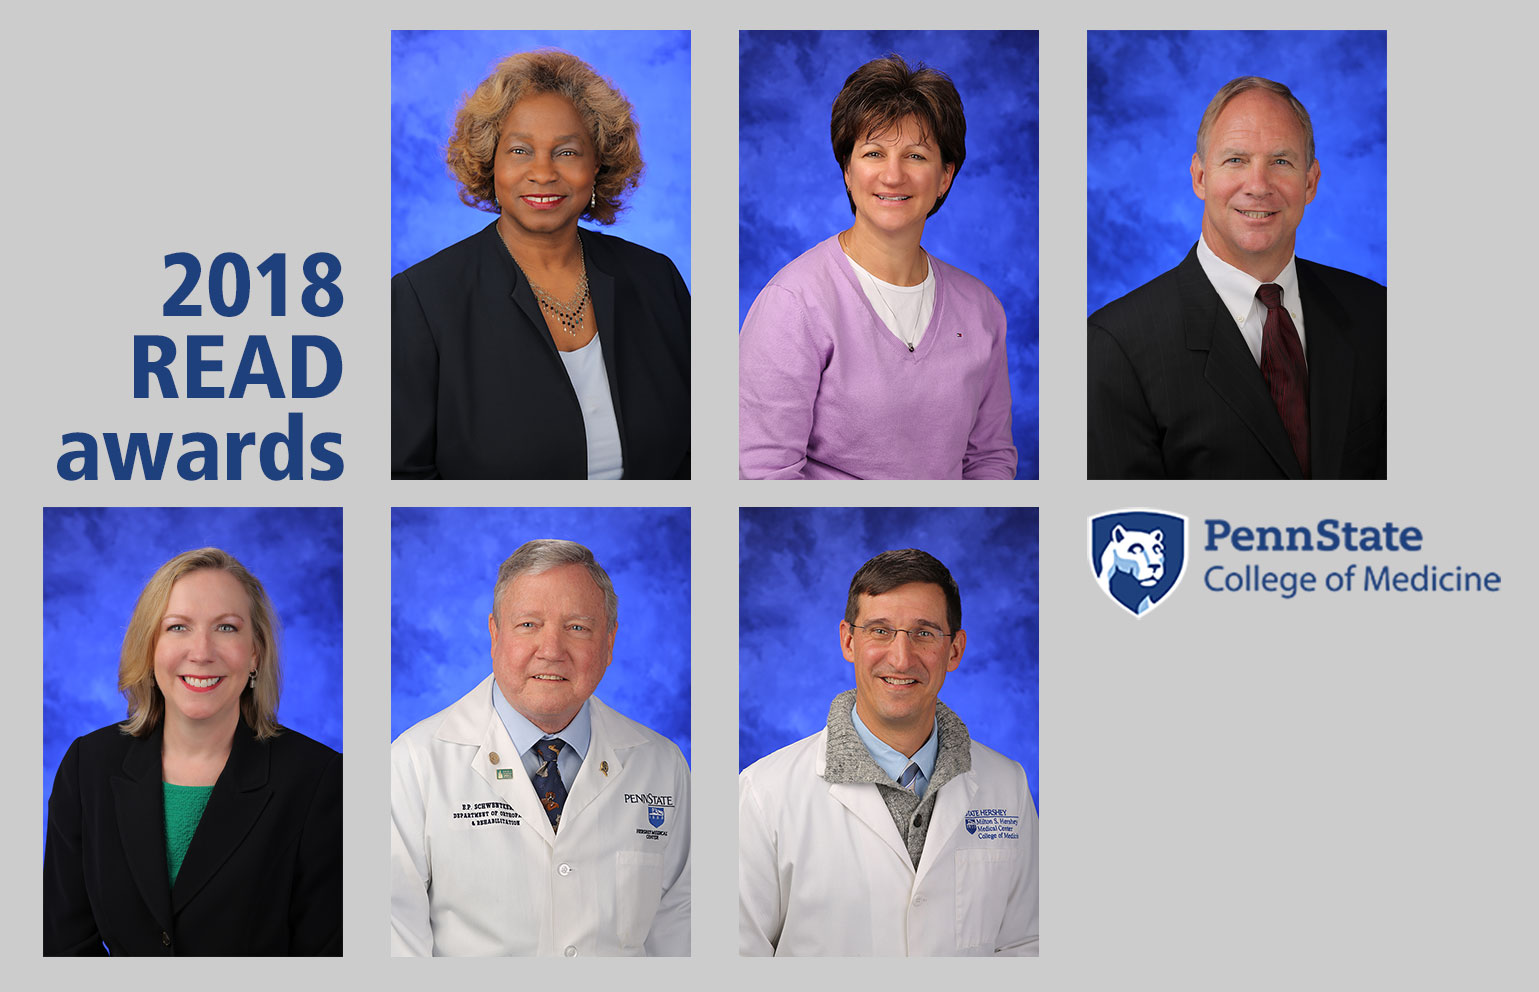 Recipients of the 2018 READ Awards given by Harrell Health Sciences Library are, from top left, Lynette Chappell-Williams, Jennifer Fenstermaker, David Gater Jr., Eileen Moser, Edward Schwentker and Mark Stephens. Professional head-and-shoulders photos of all six recipients are set on a plain-colored background with the text